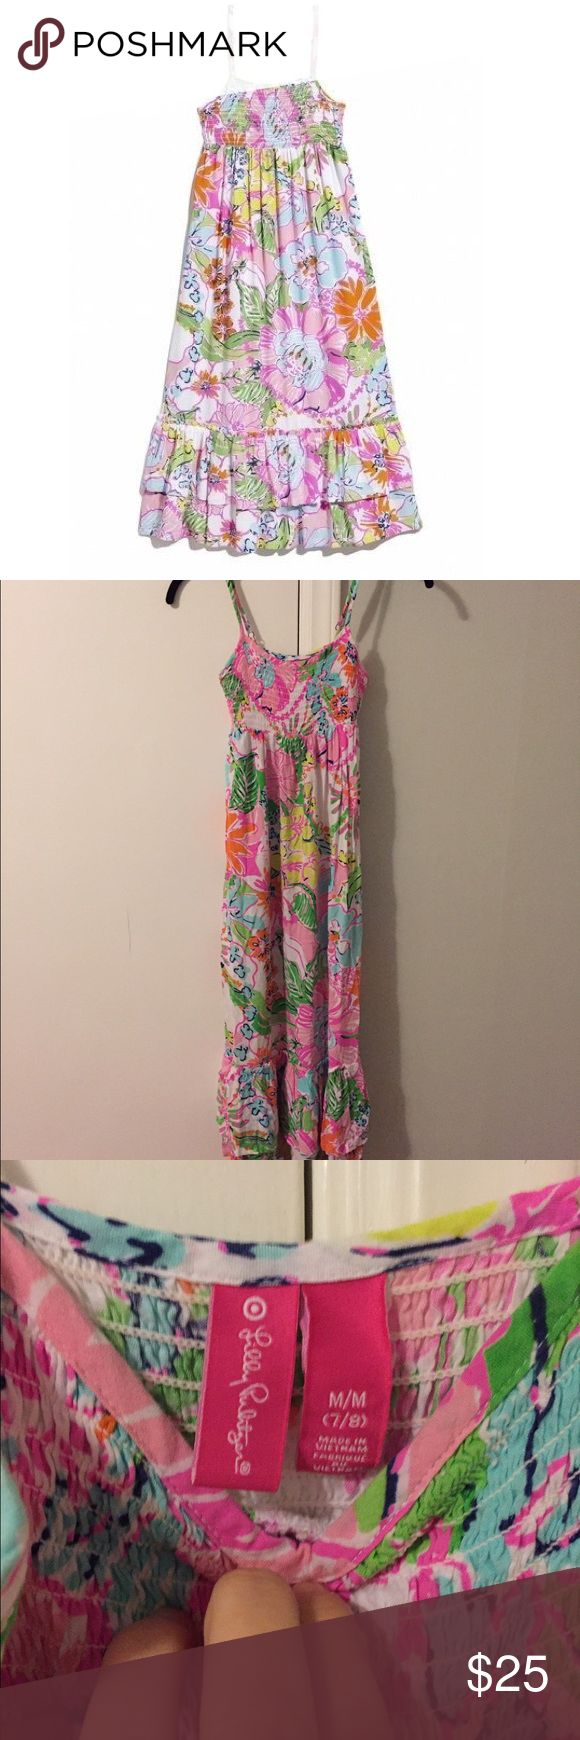 EUC Lilly for Target Kids Maxi Dress Just Darling! EUC, perfect for Easter, Spring, Summer, and beyond! Size 7 / 8. All offers considered :) Lilly Pulitzer Dresses Casual